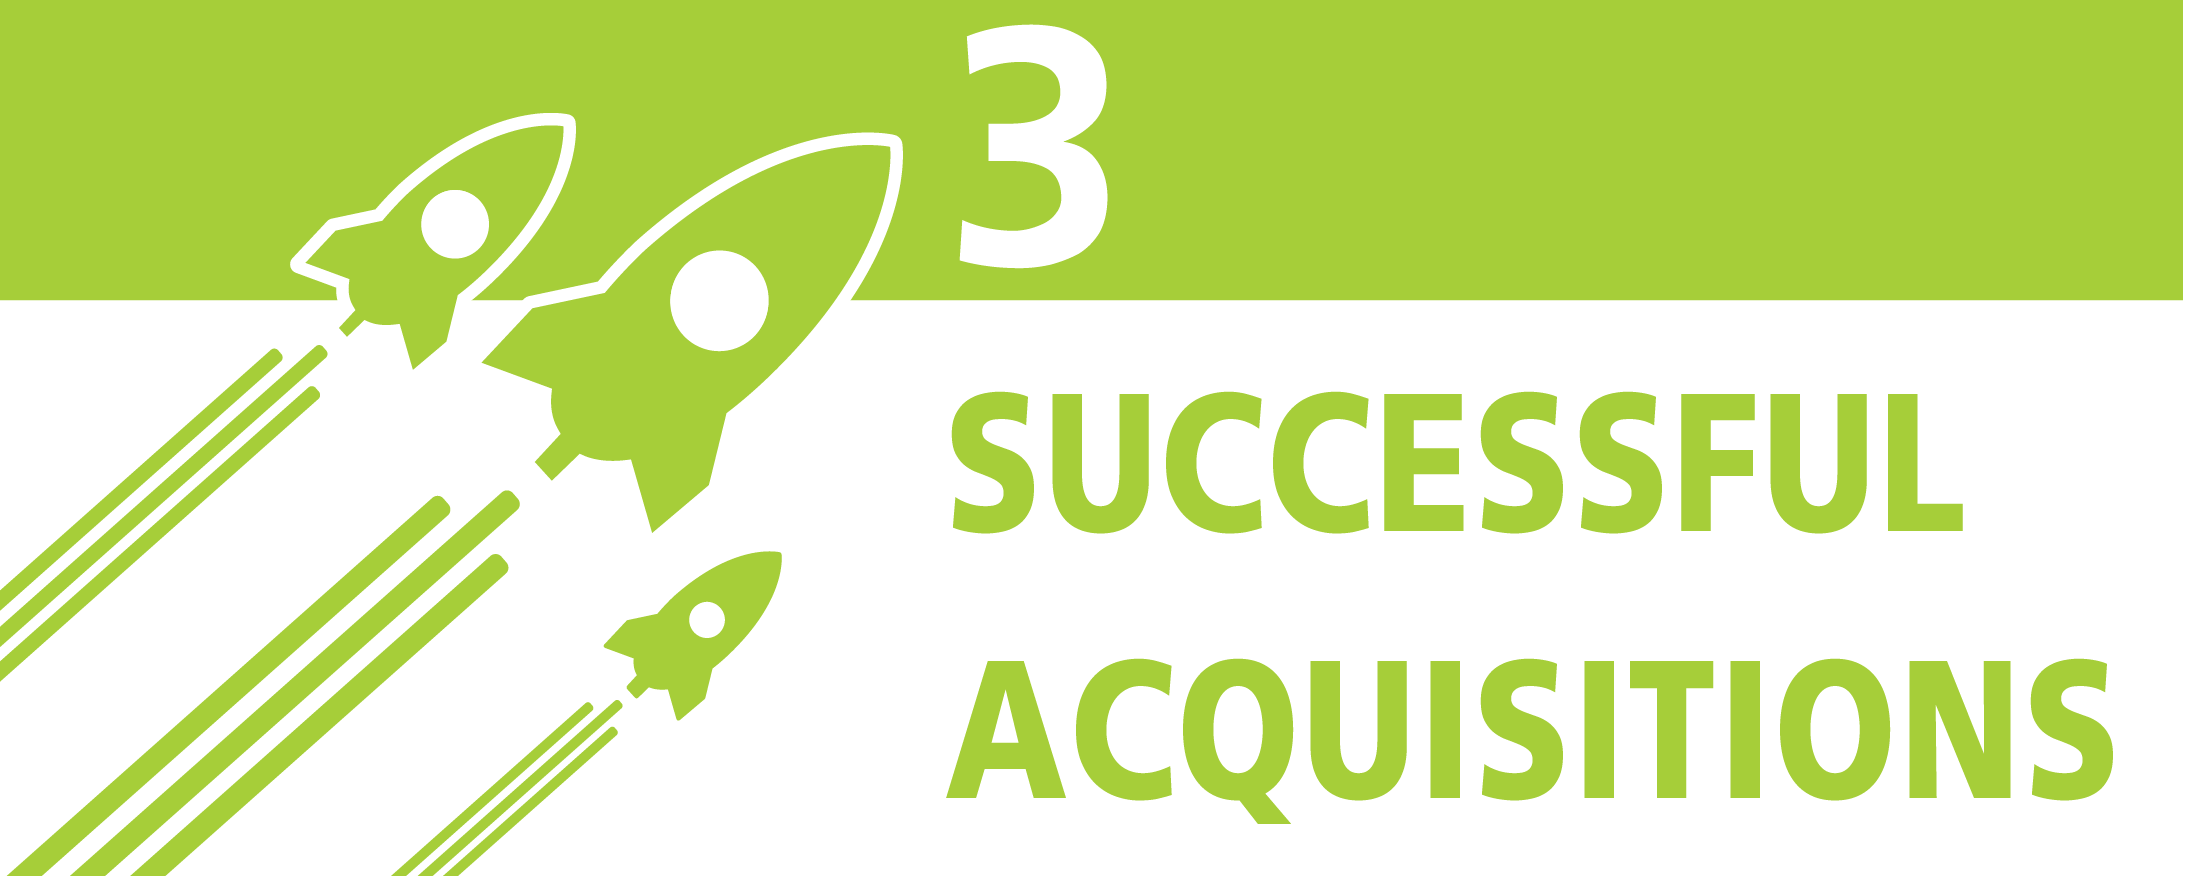 TB-SLIDER-ACQUISITIONS 2018.png